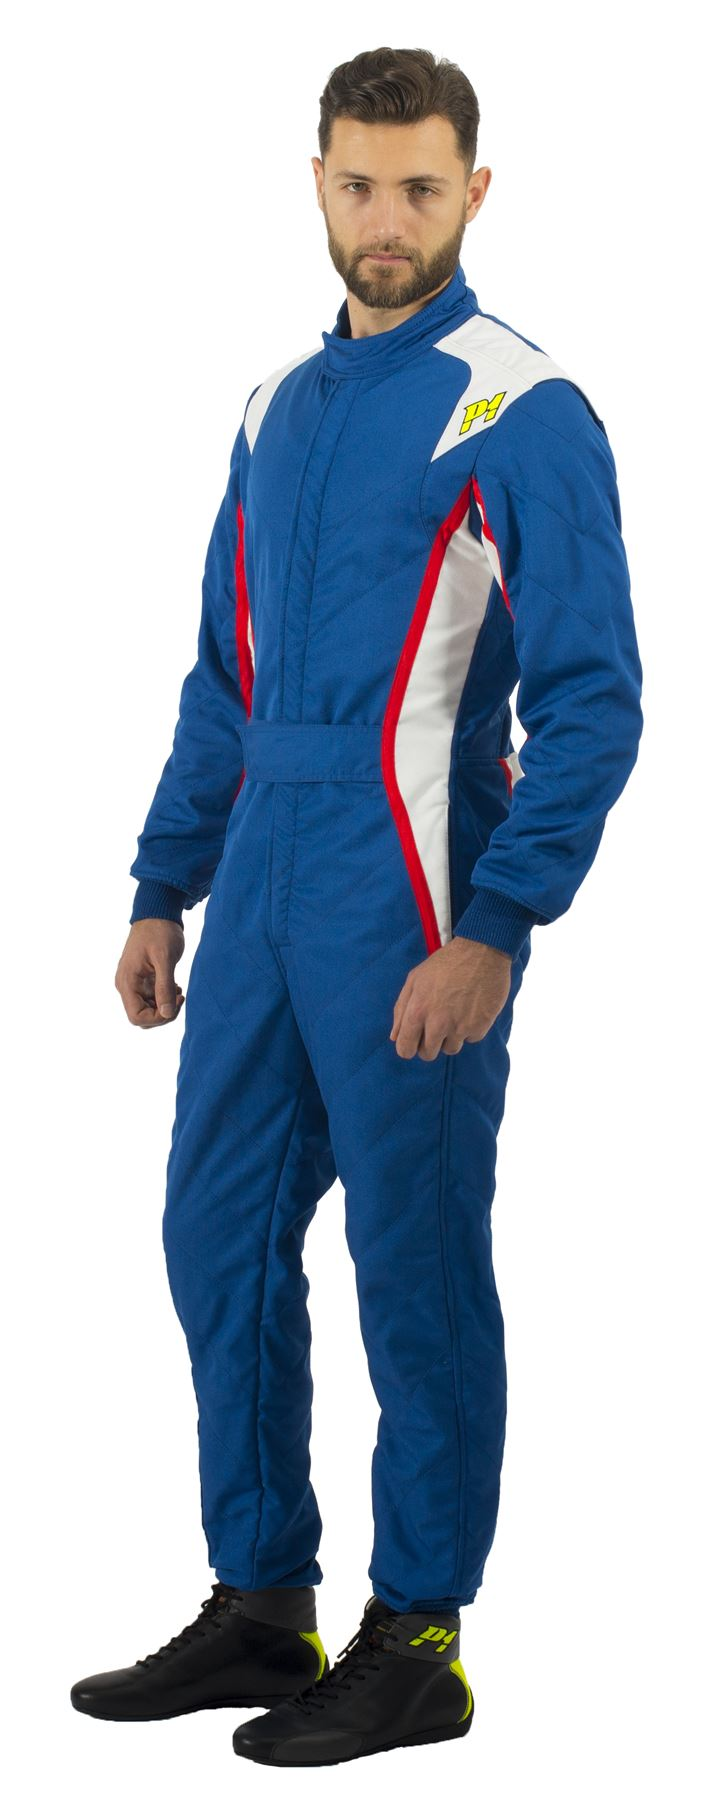 Indexbild 9 - P1-Racewear-Turbo-16-Professional-2-Layer-Race-Suit-FIA-Approved-For-Race-Rally